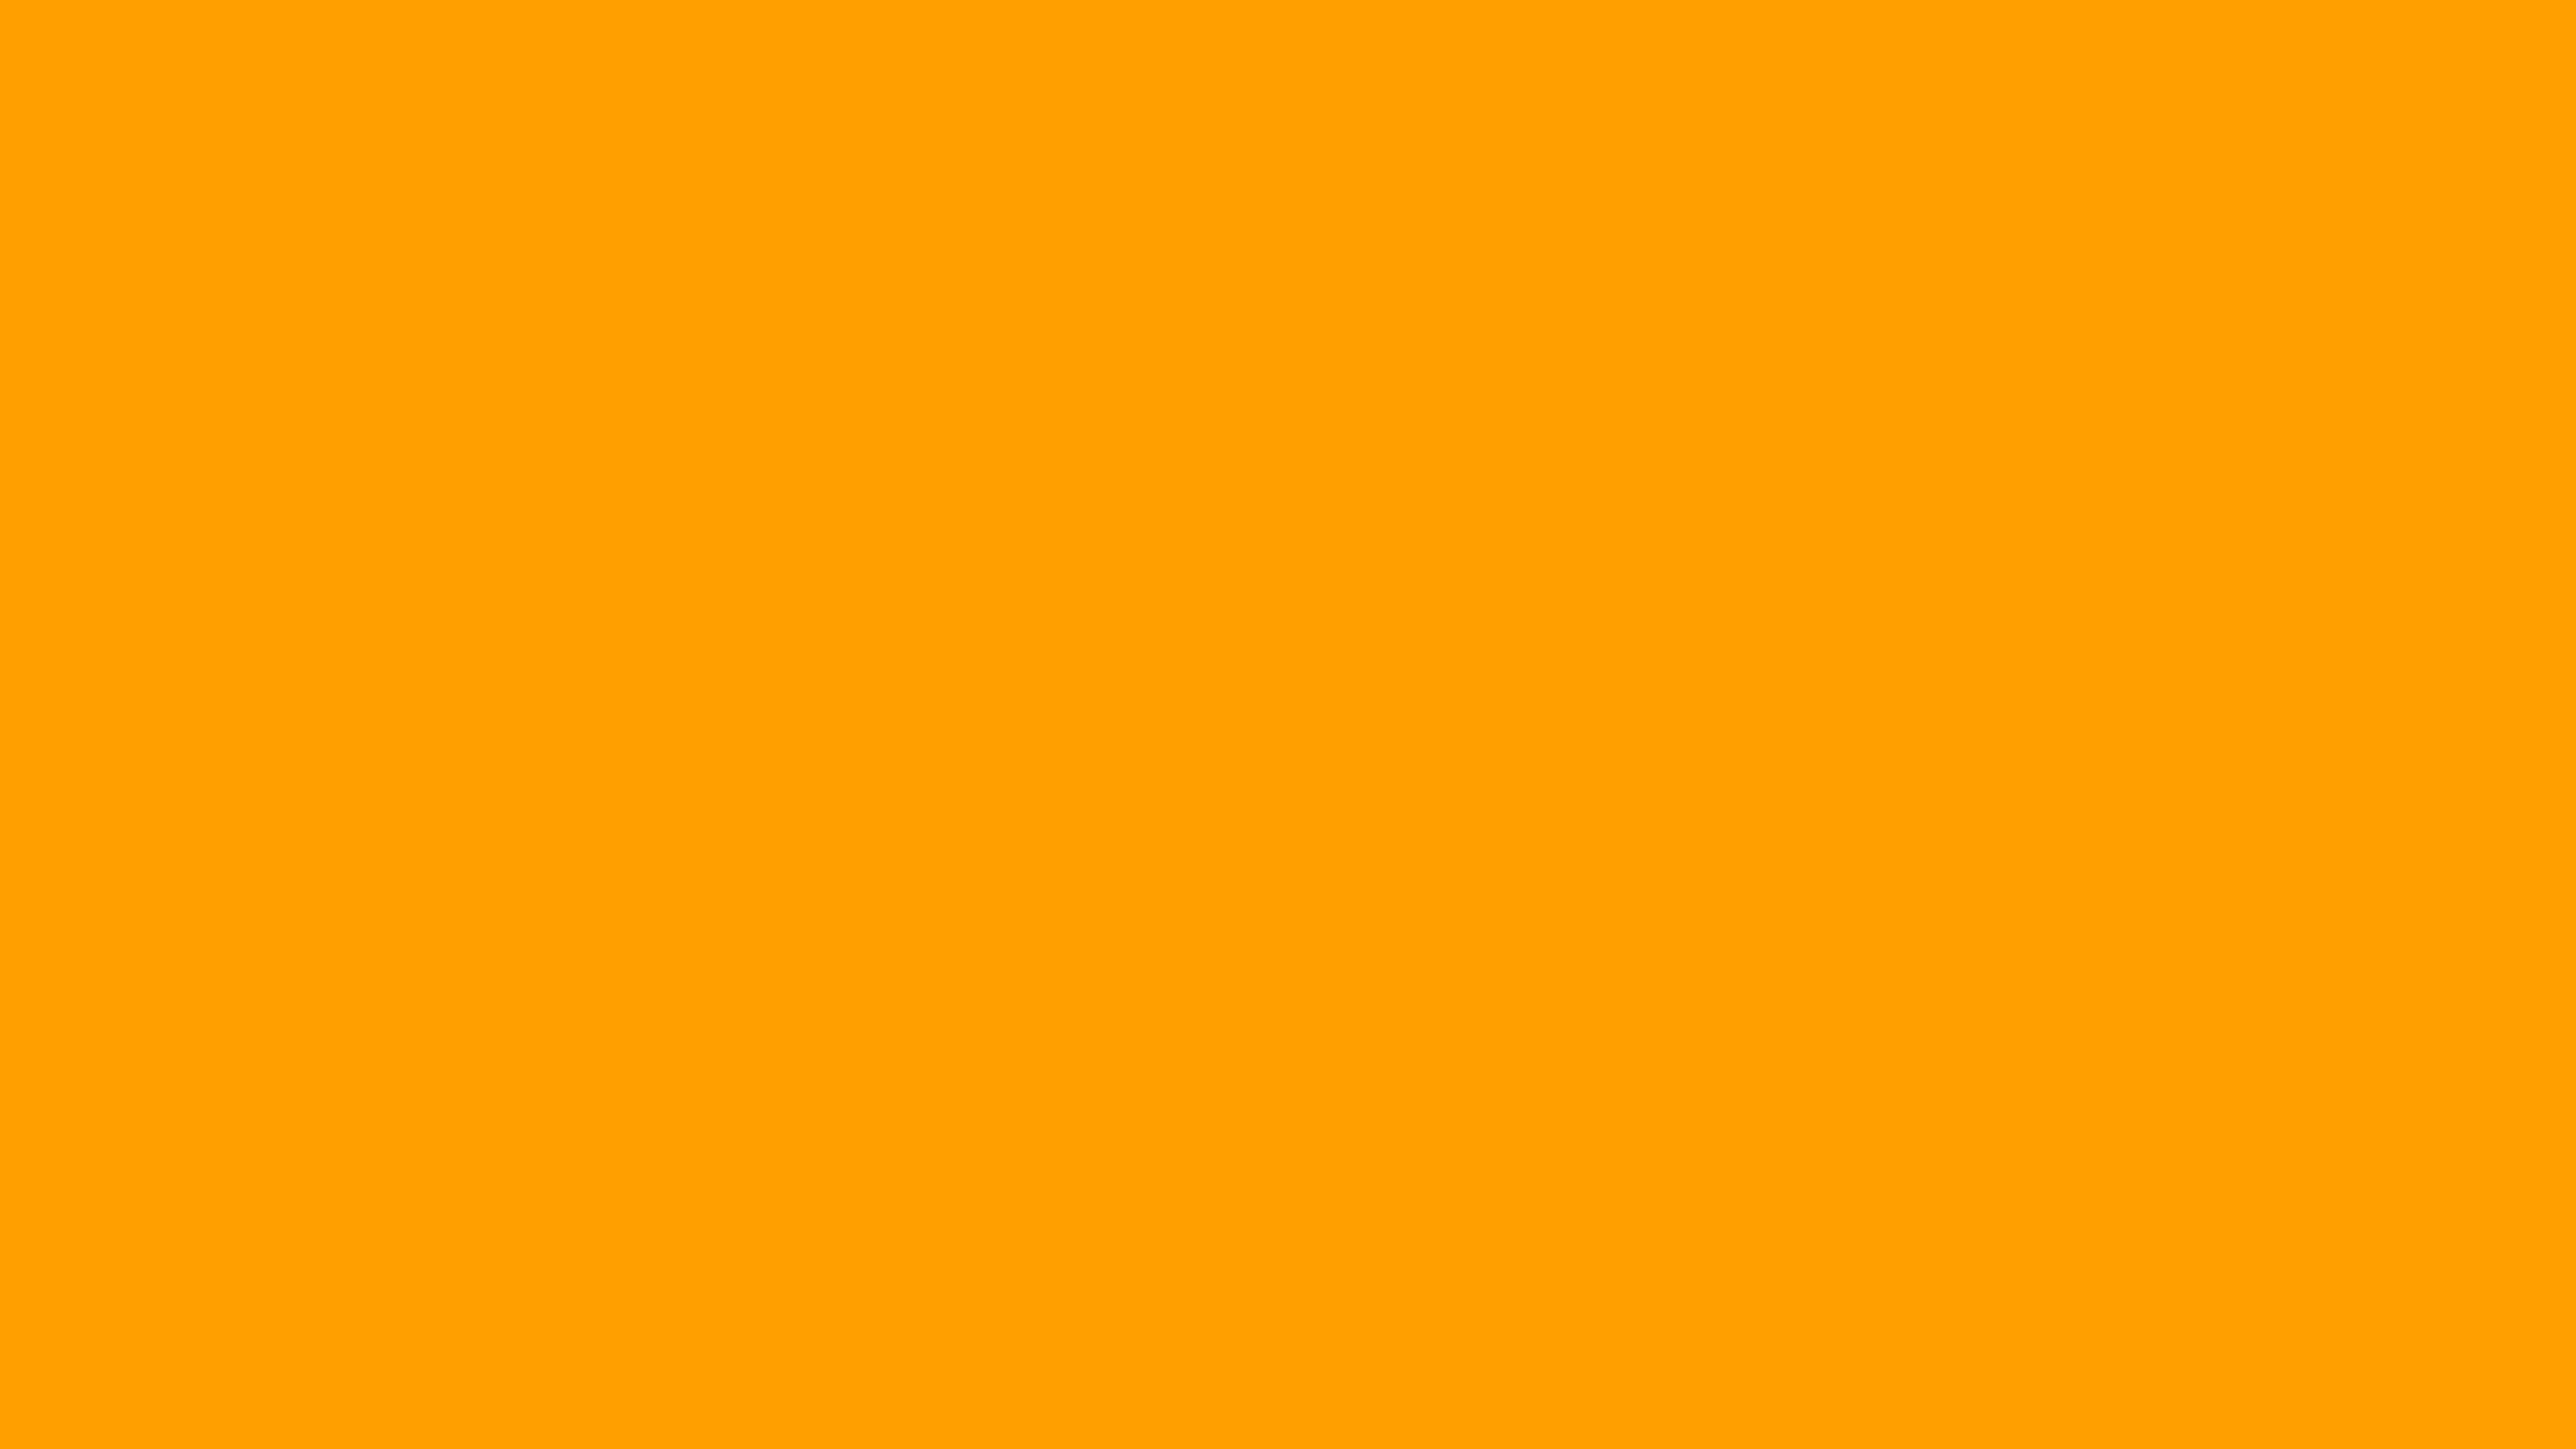 3840x2160 Orange Peel Solid Color Background